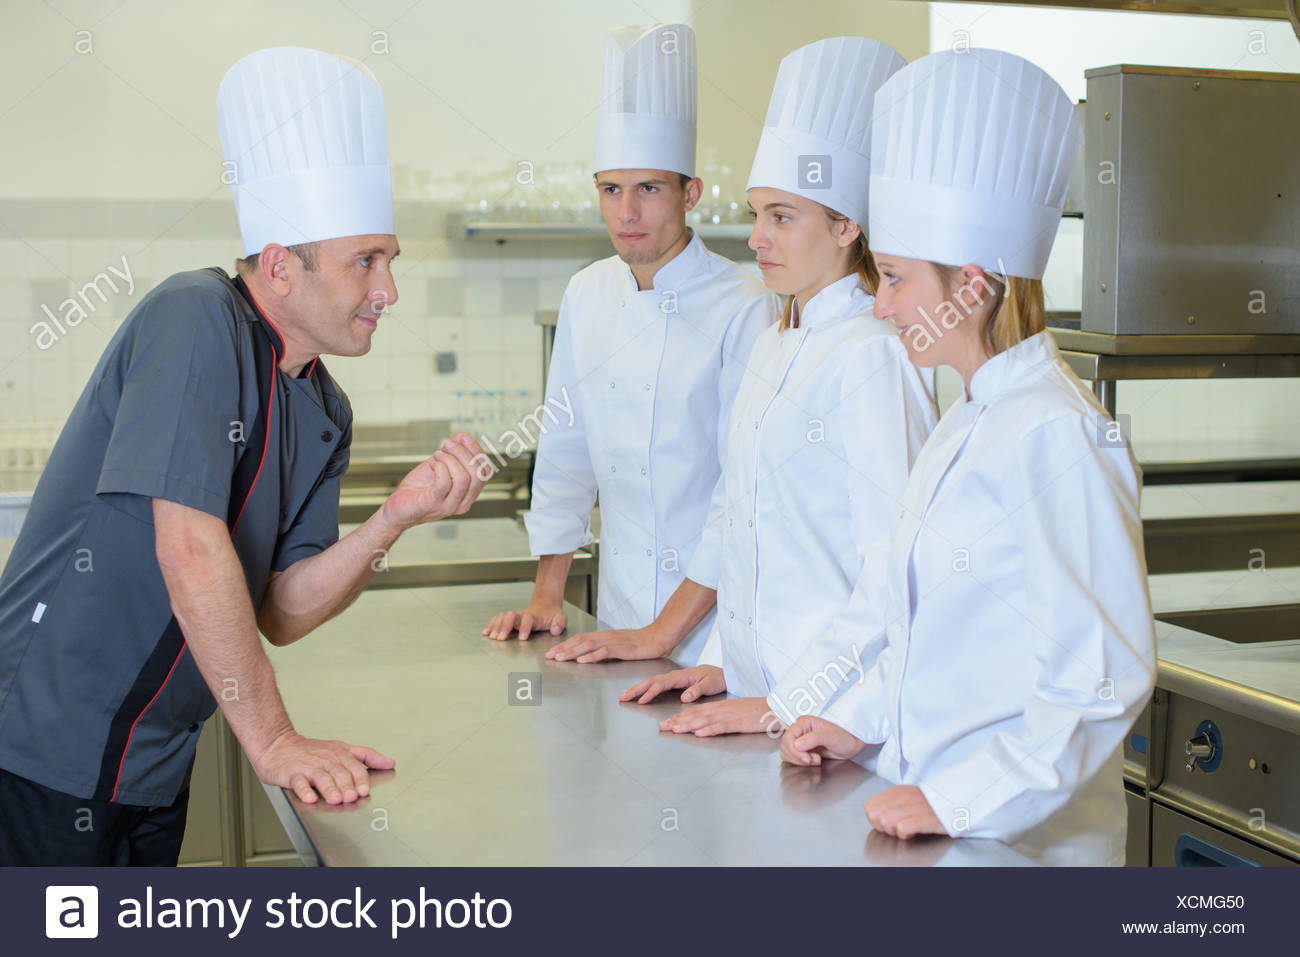 giving a lecture in the kitchen - Stock Image